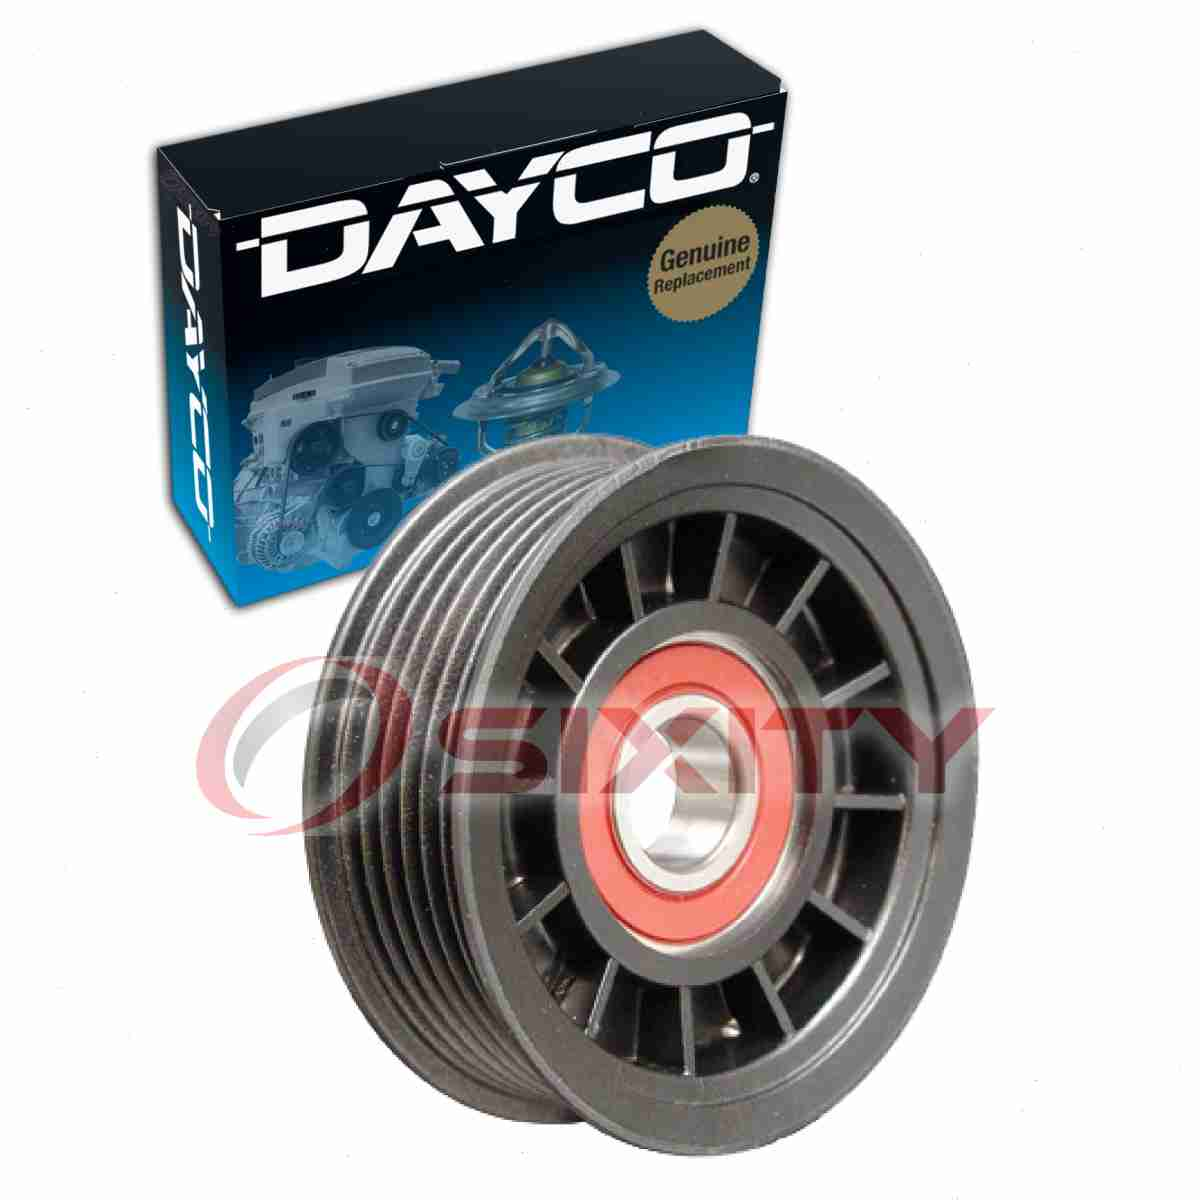 Dayco Drive Belt Pulley For 2003-2004 Cadillac CTS 3.2L V6